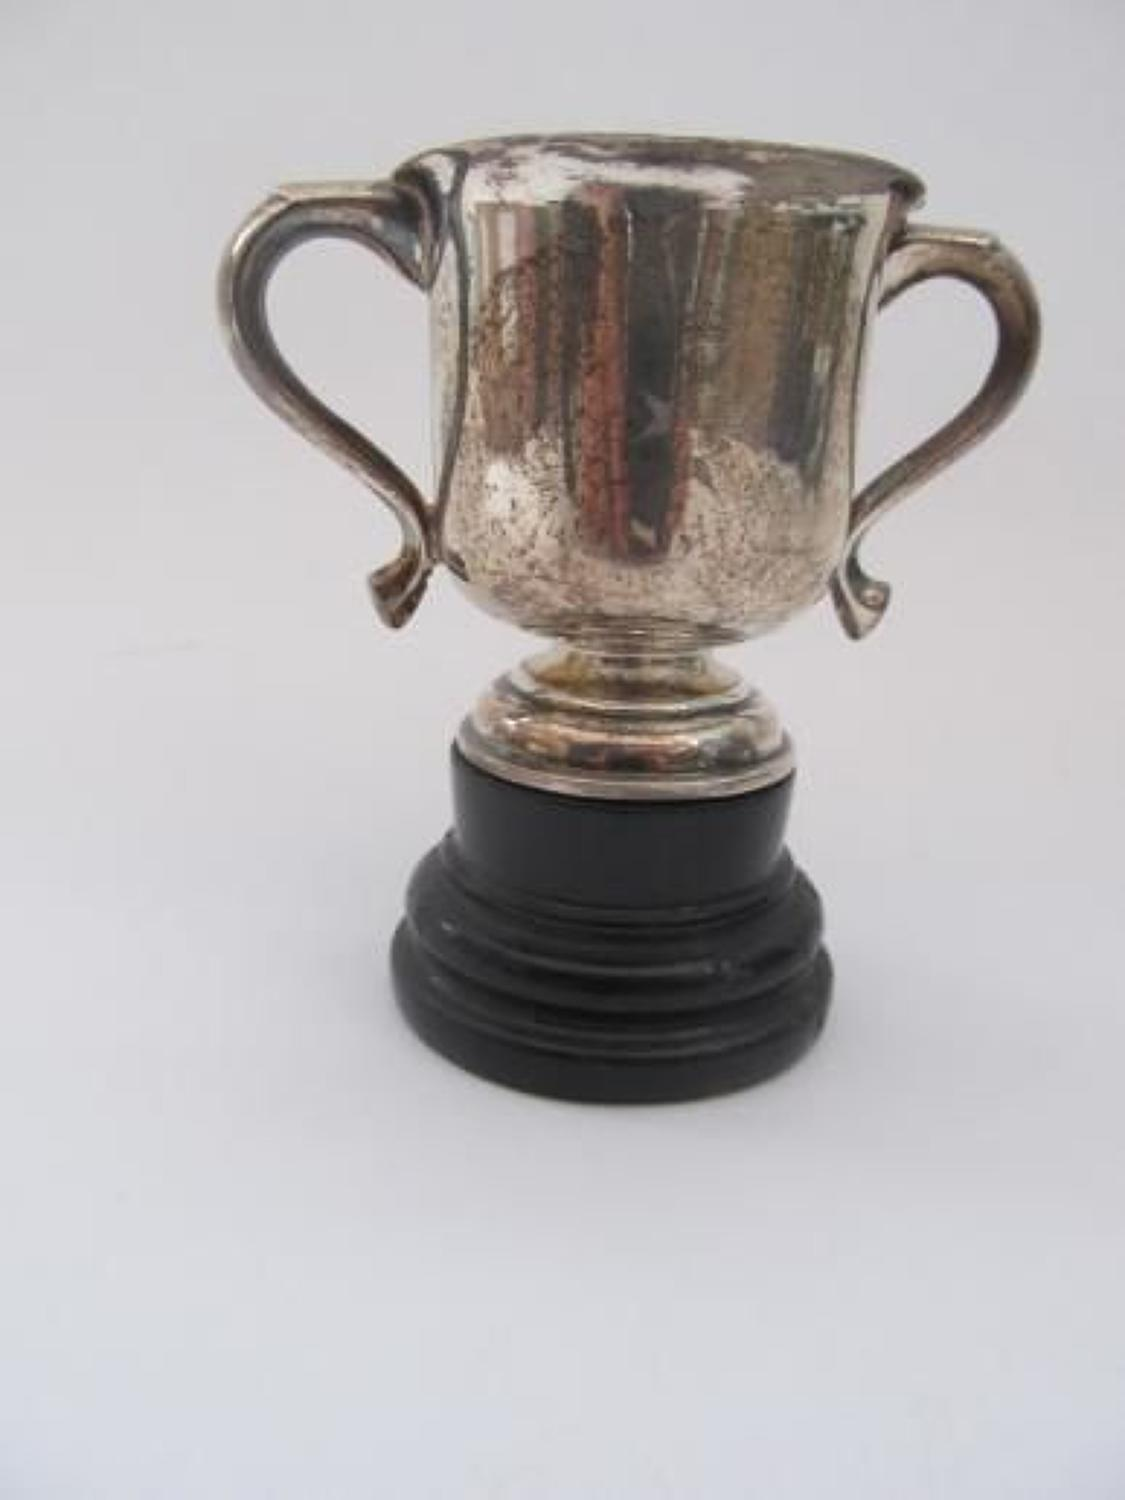 Silver Hallmarked Post 1901 Sherwood Forester's Cup